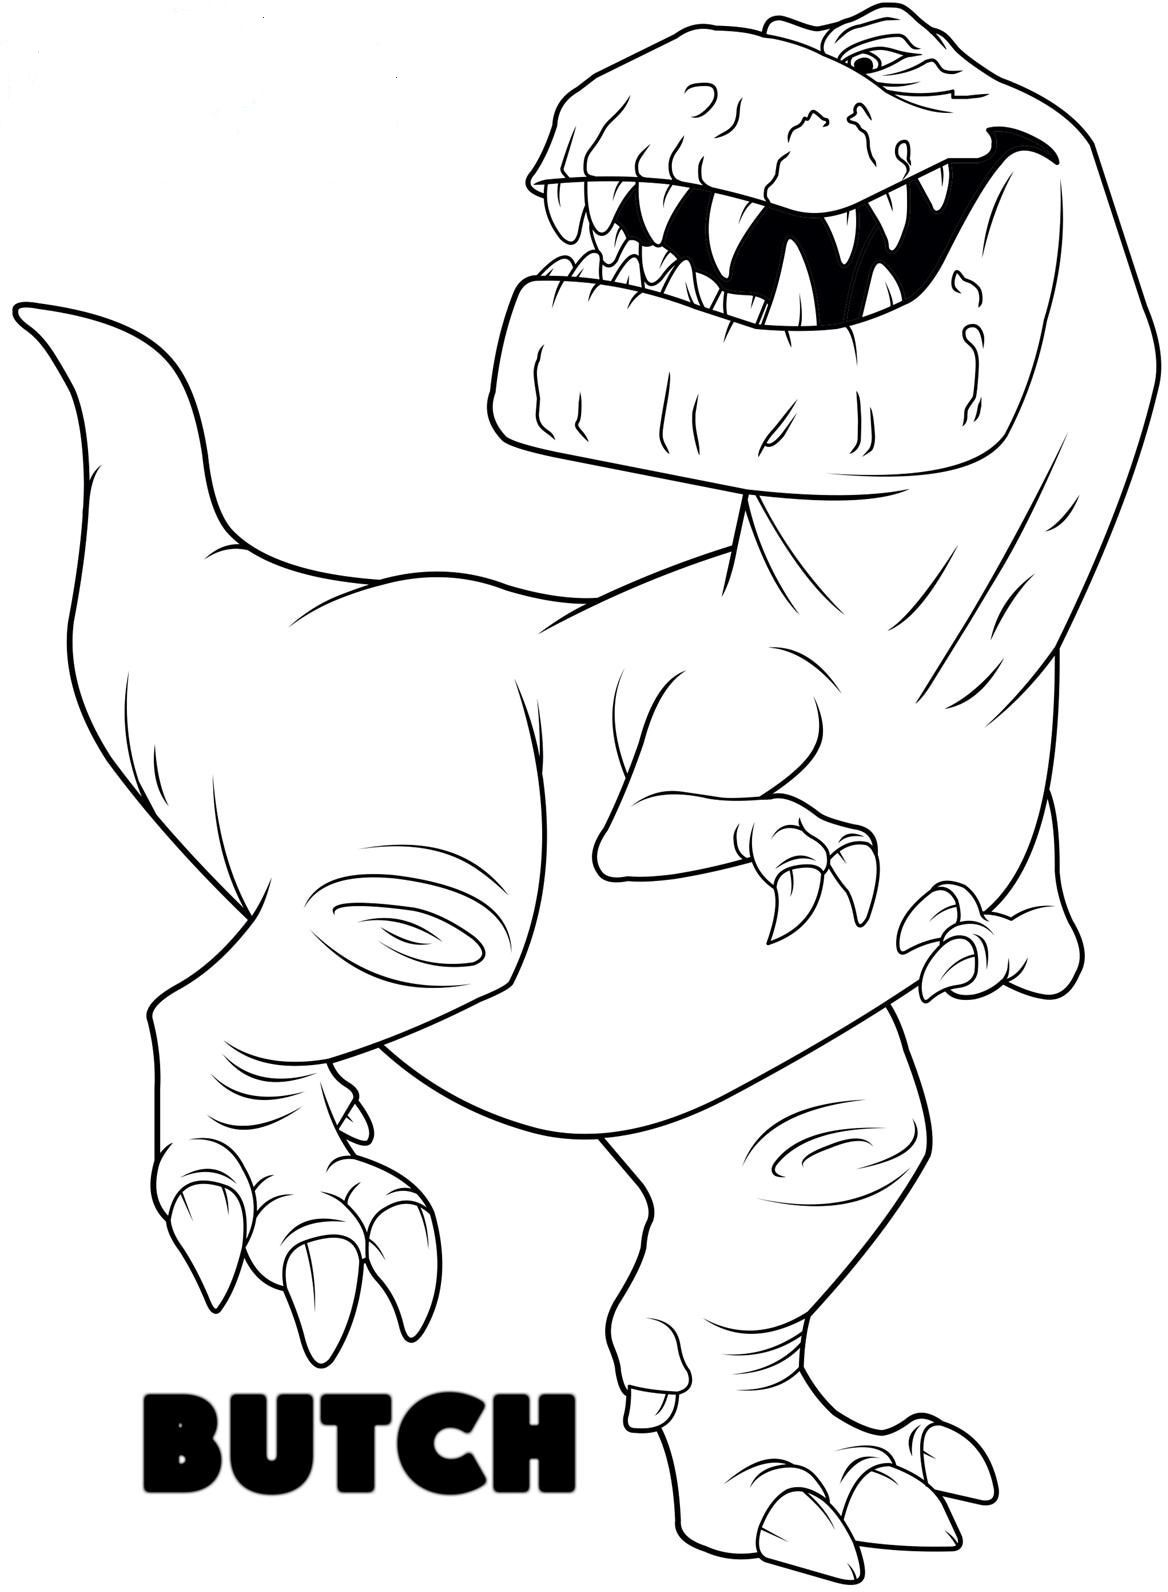 Disney dinosaur coloring pages - These Fun The Good Dinosaur Coloring Pages Will Get You Excited About Disney Pixar S The Good Dinosaur In Theaters Thanksgiving Day